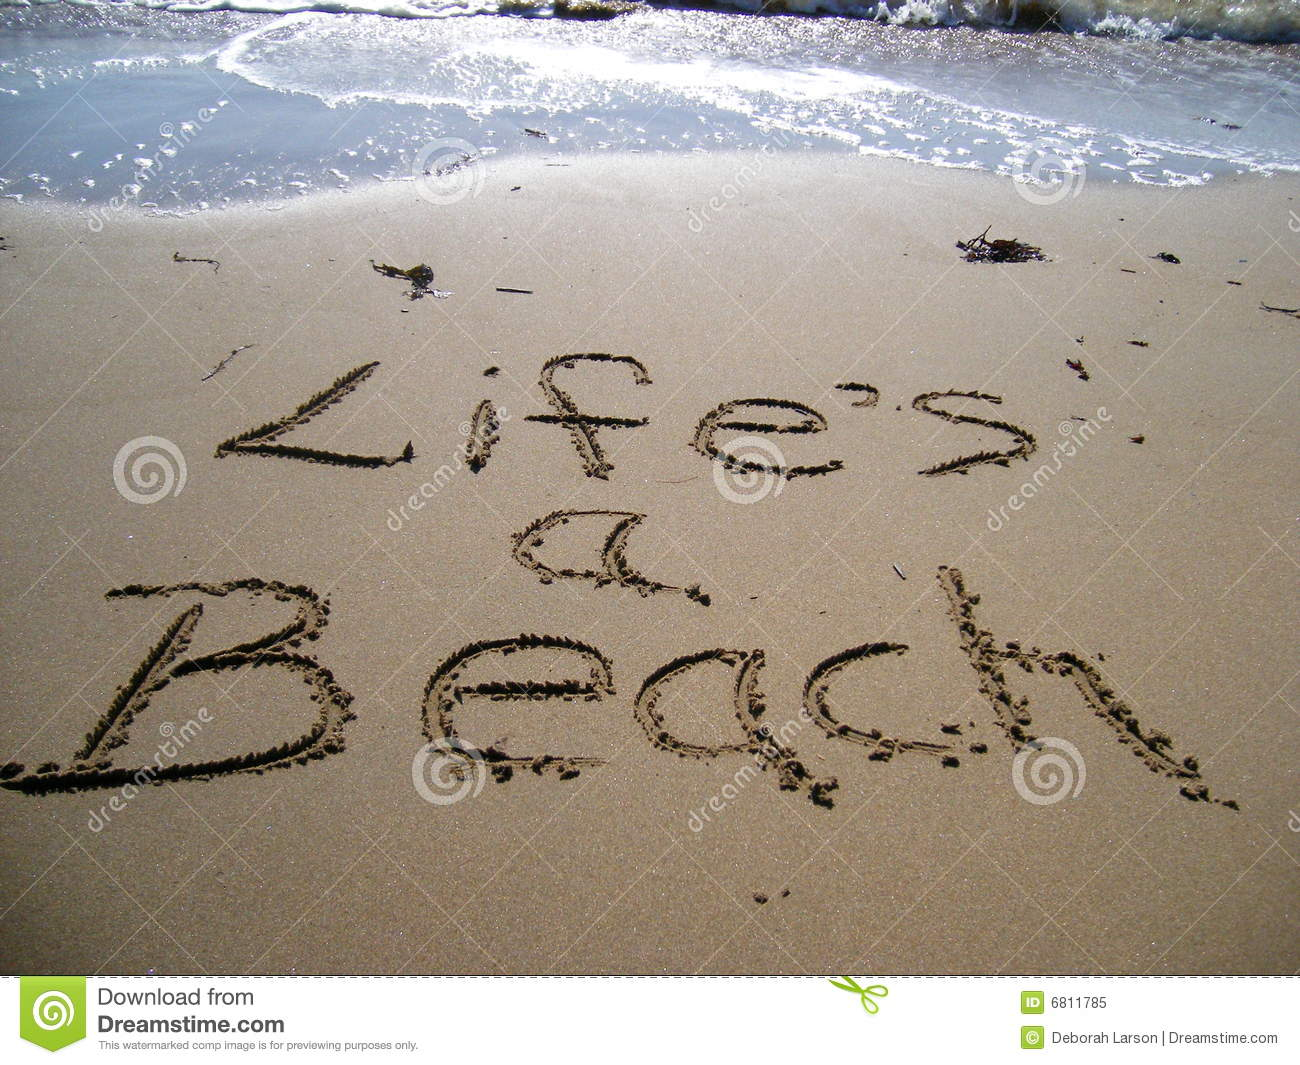 Royalty Free Stock Photo Life S Beach Image6811785 on vacation house plans